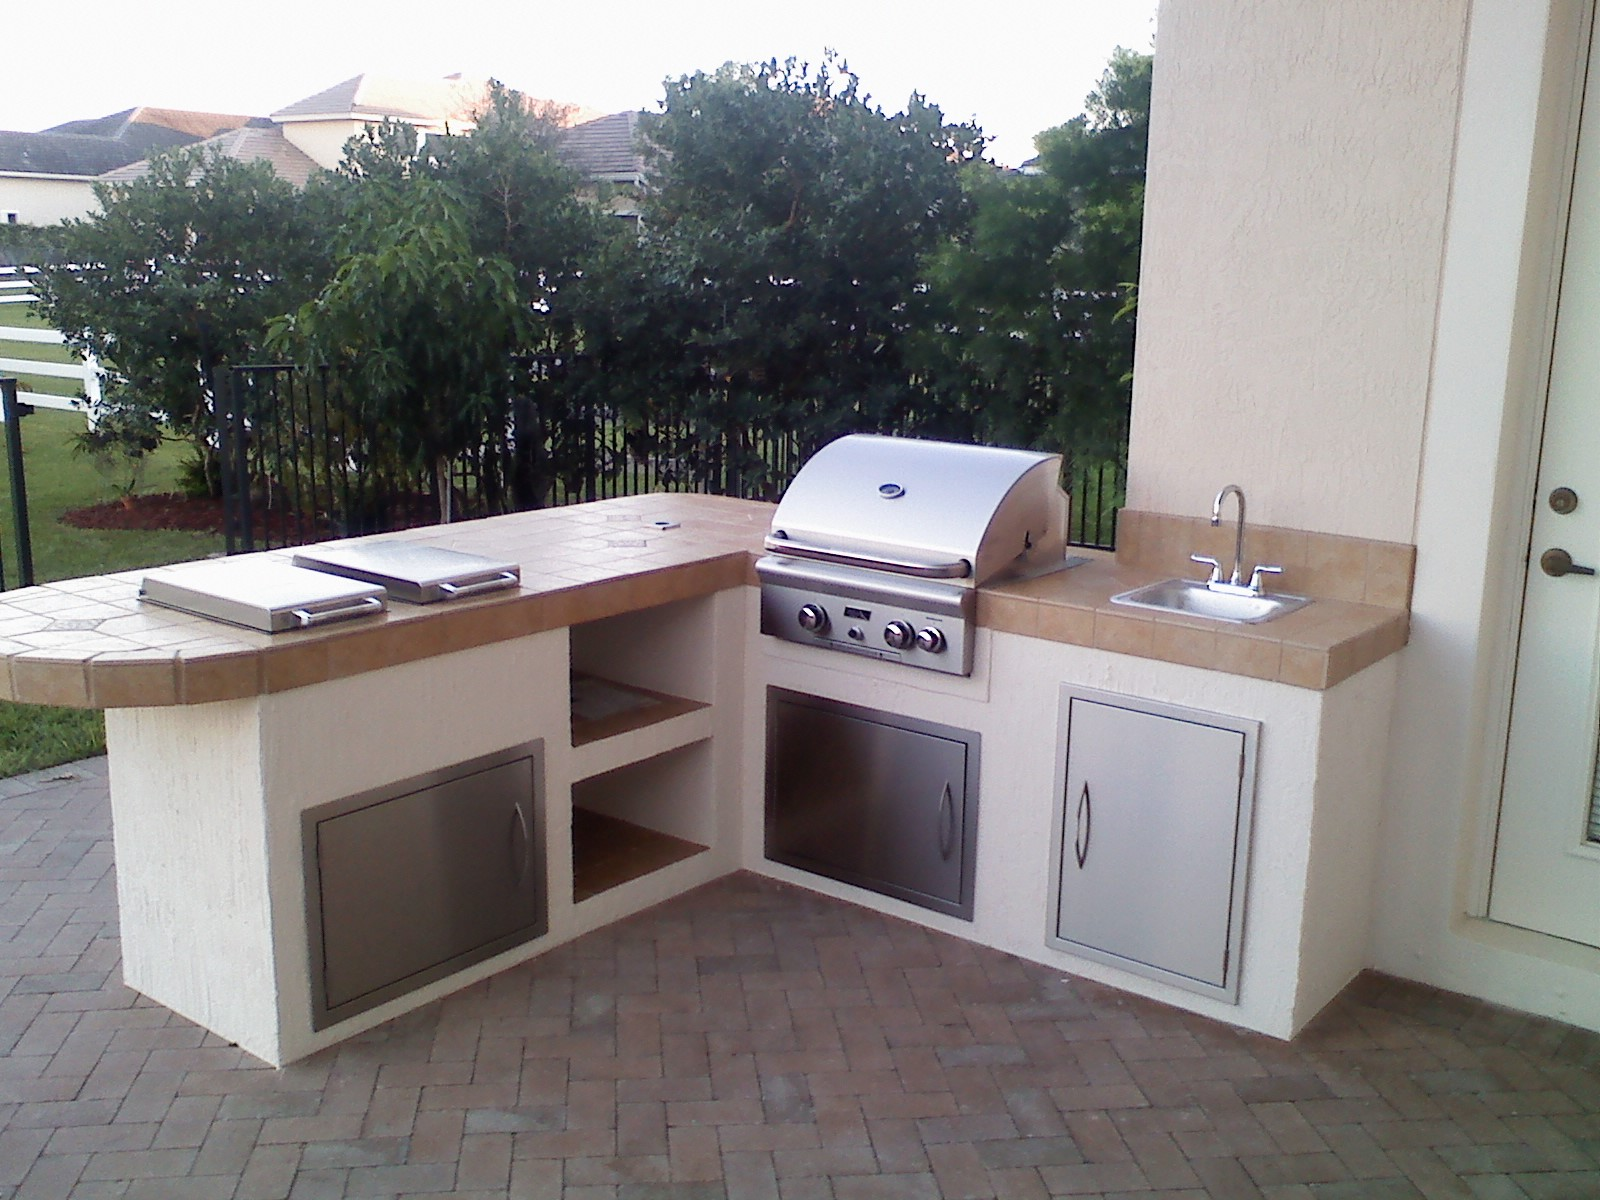 aog24 built in american outdoor grill island outdoor kitchen with aog